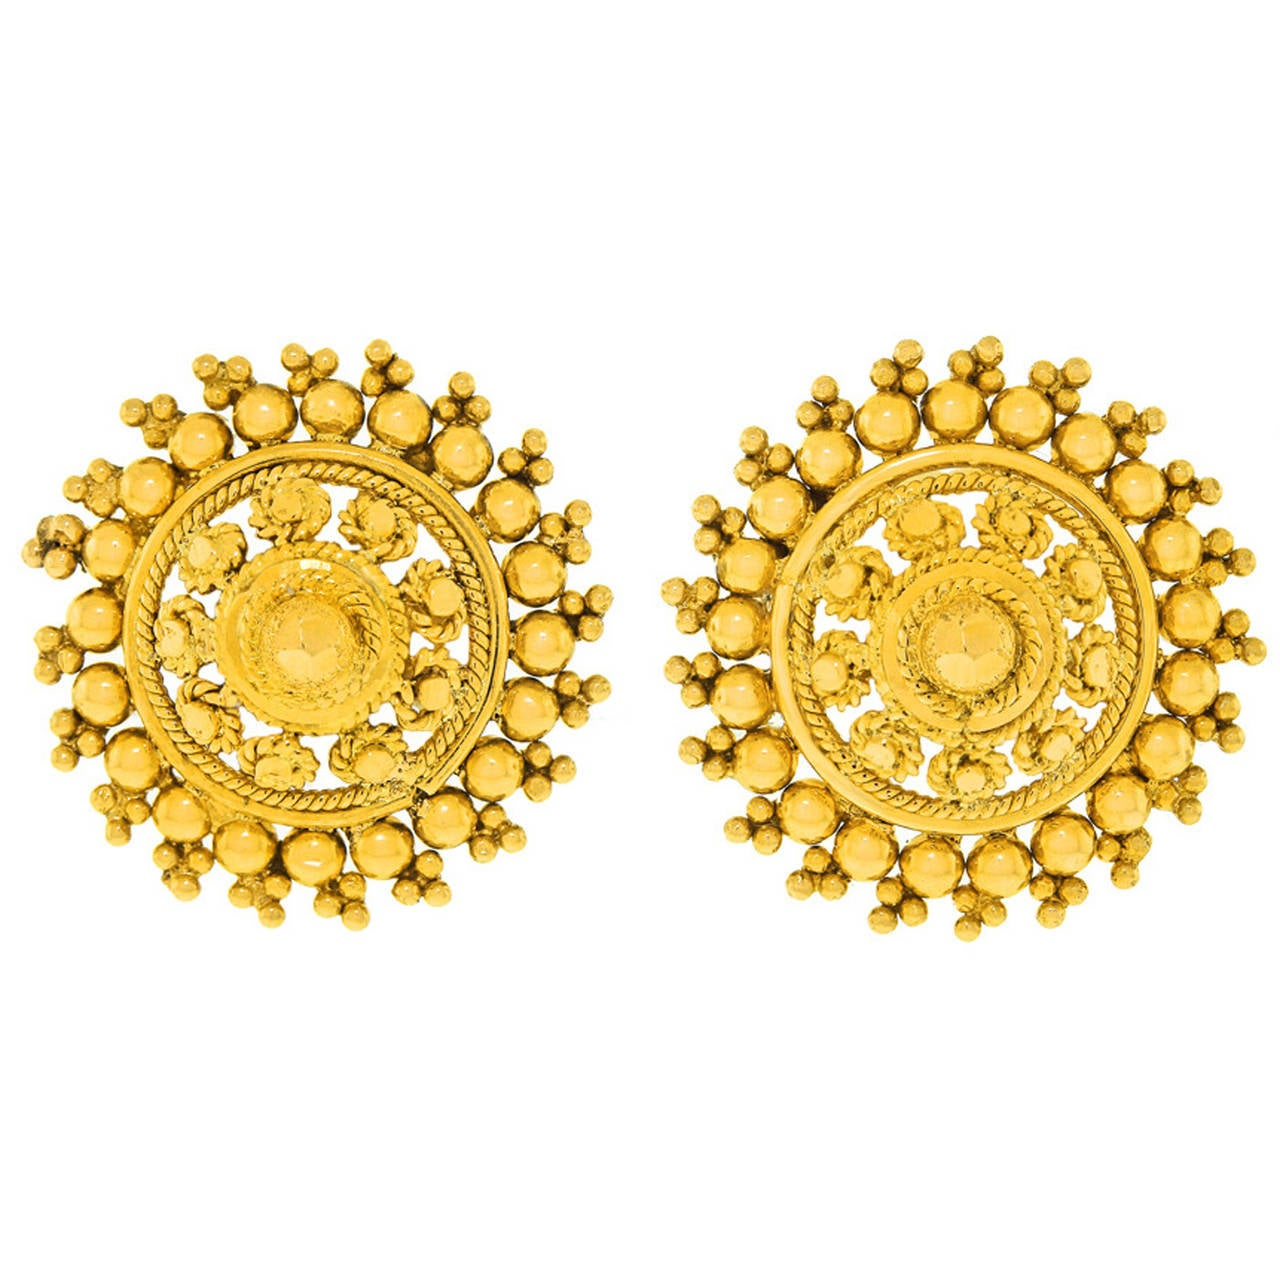 1960s Chic High Karat Gold Boho Indian Earrings at 1stdibs